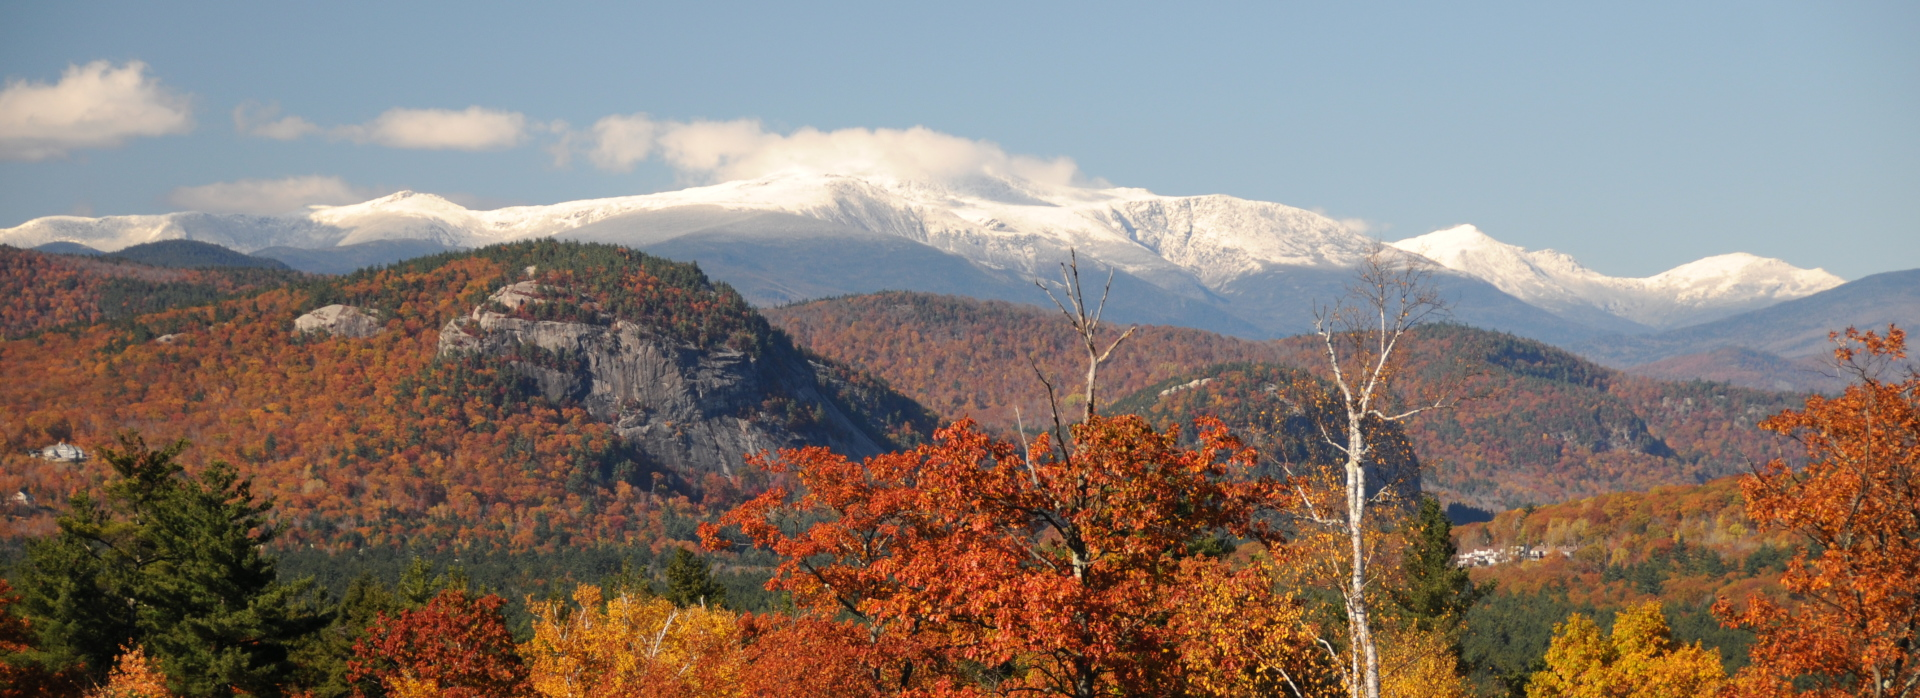 Mount Washington in fall exposure